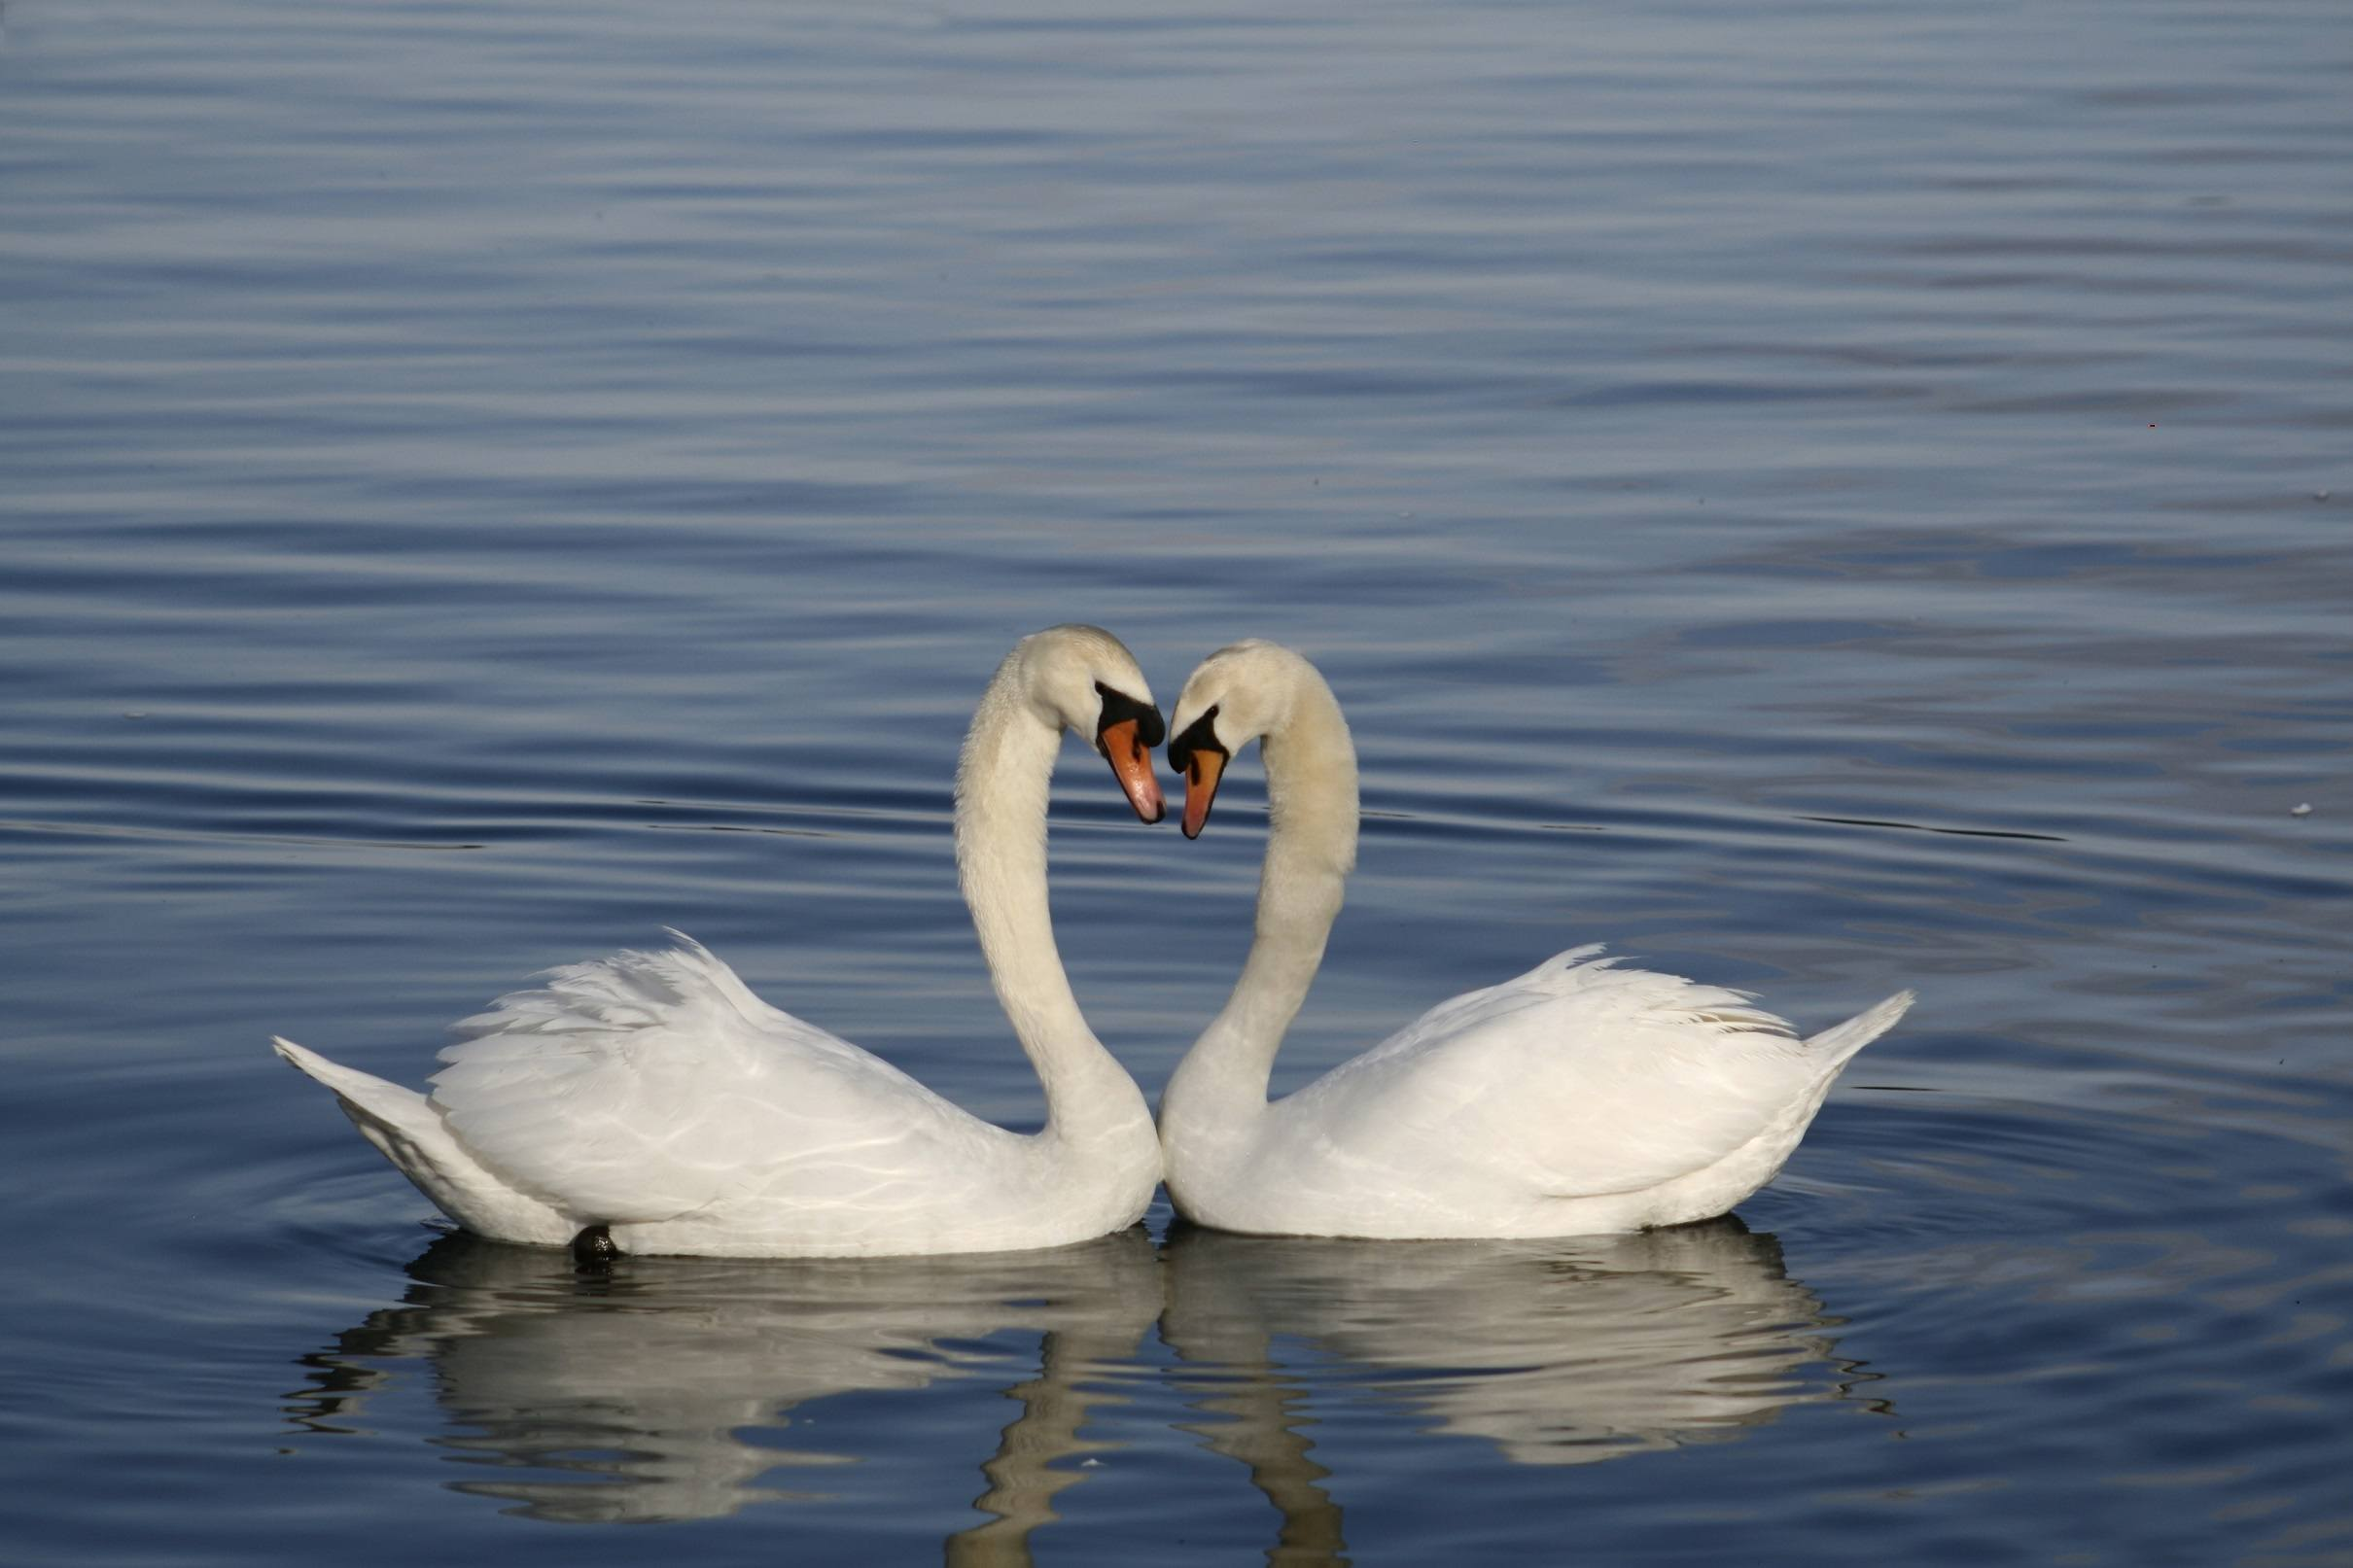 Swans with heads together